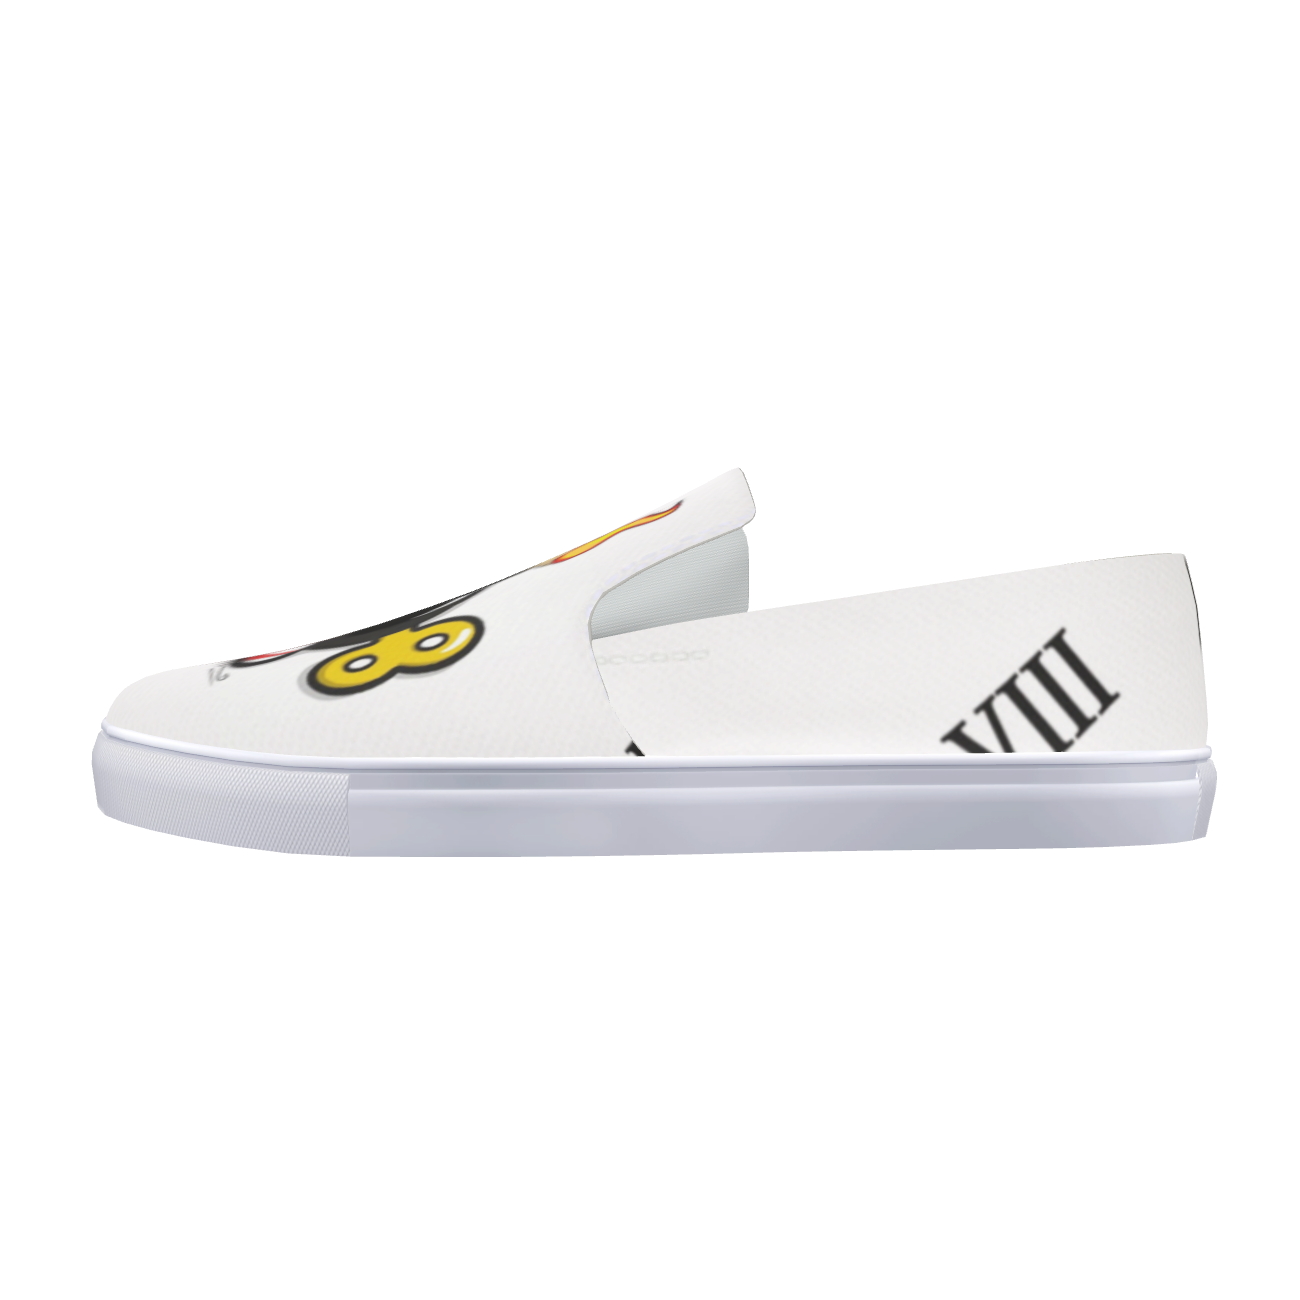 TIME BOMB Slip-On Canvas Shoe